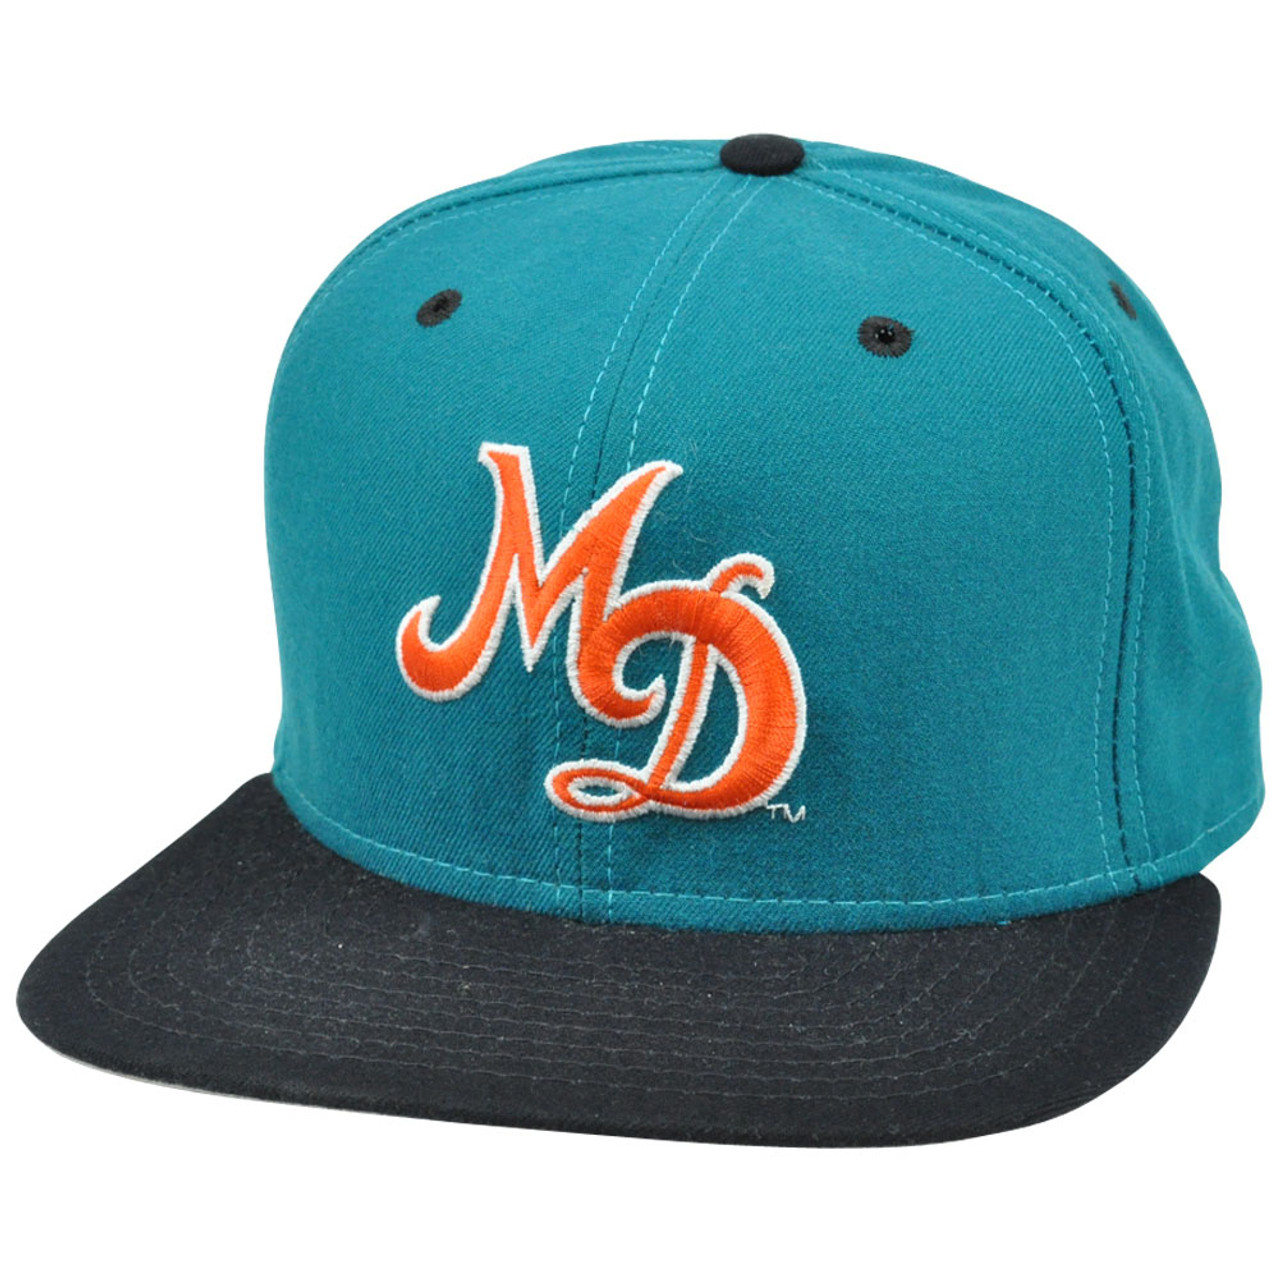 49907a29 NFL Miami Dolphins Vintage Old School Flat Snapback New Era Pro Model Hat  Cap